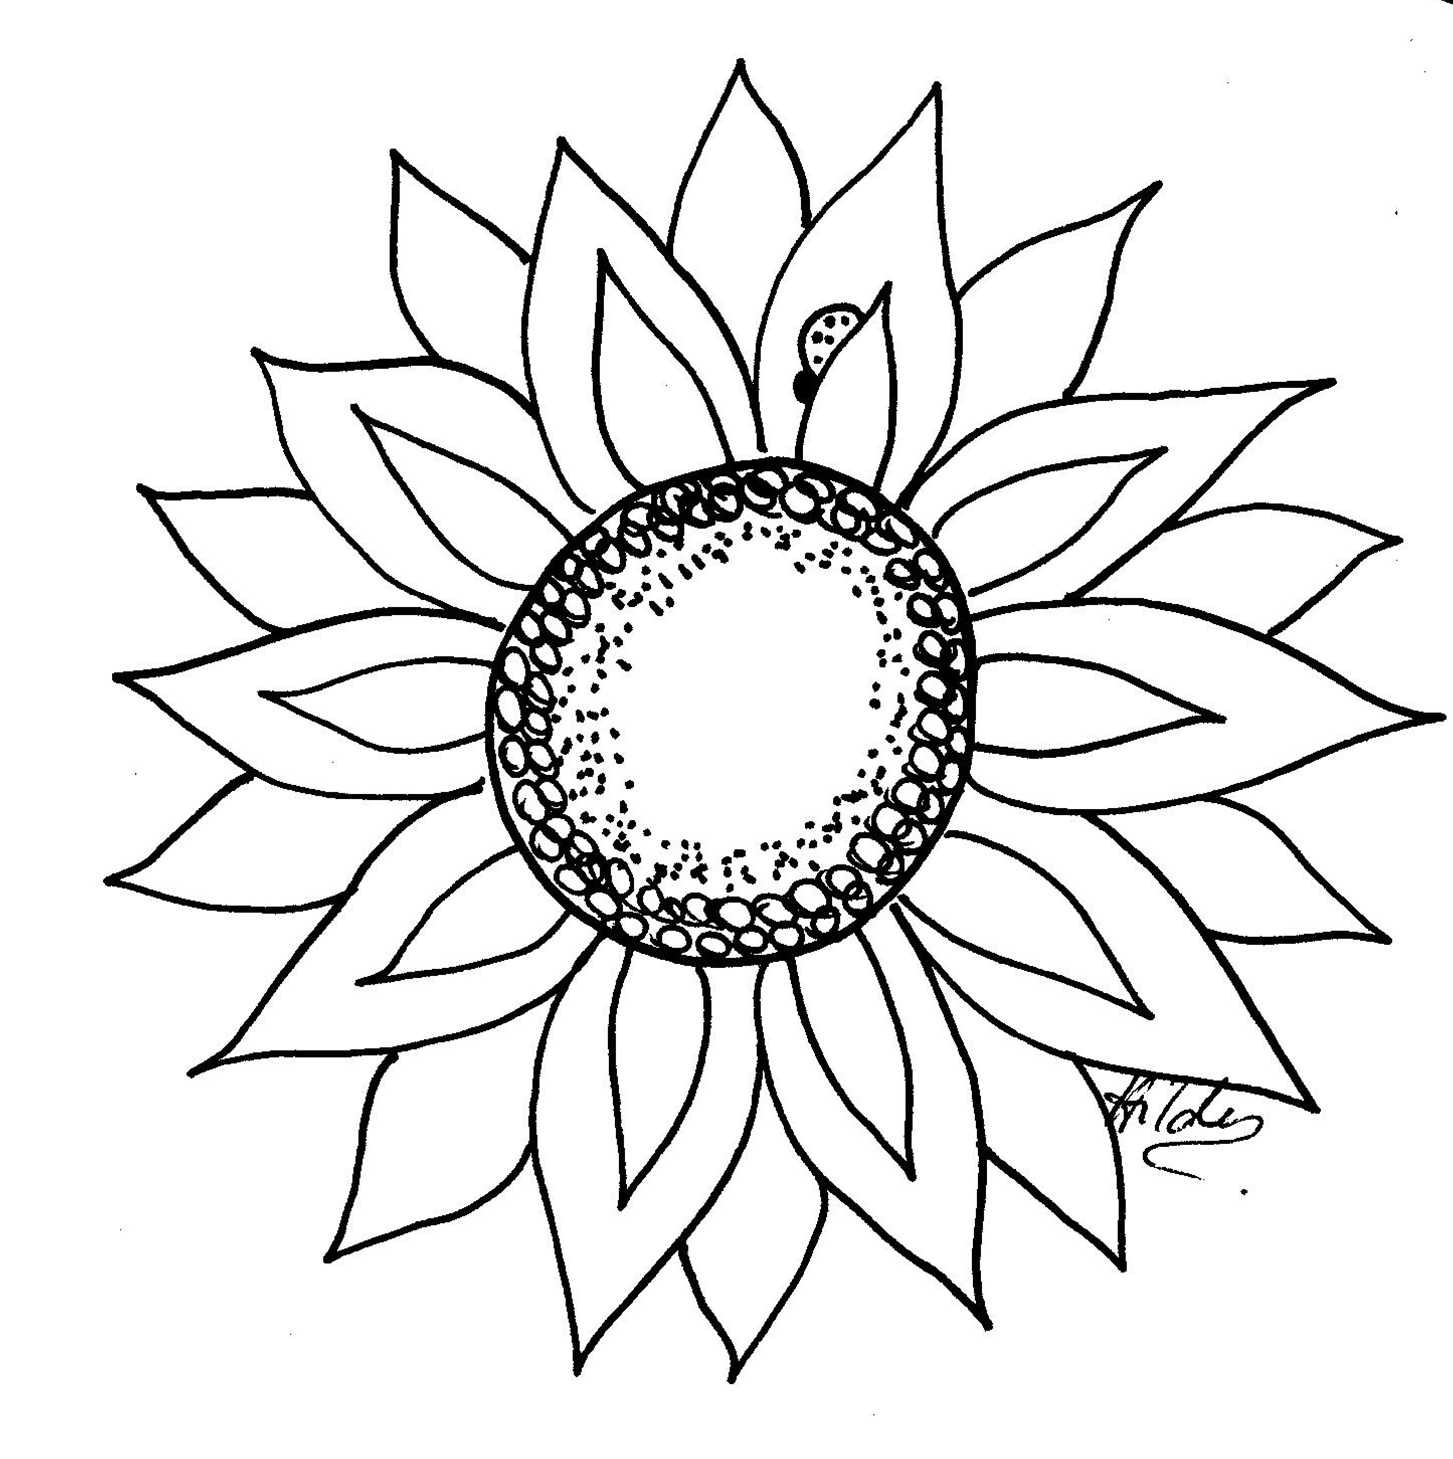 Outline of a sunflower